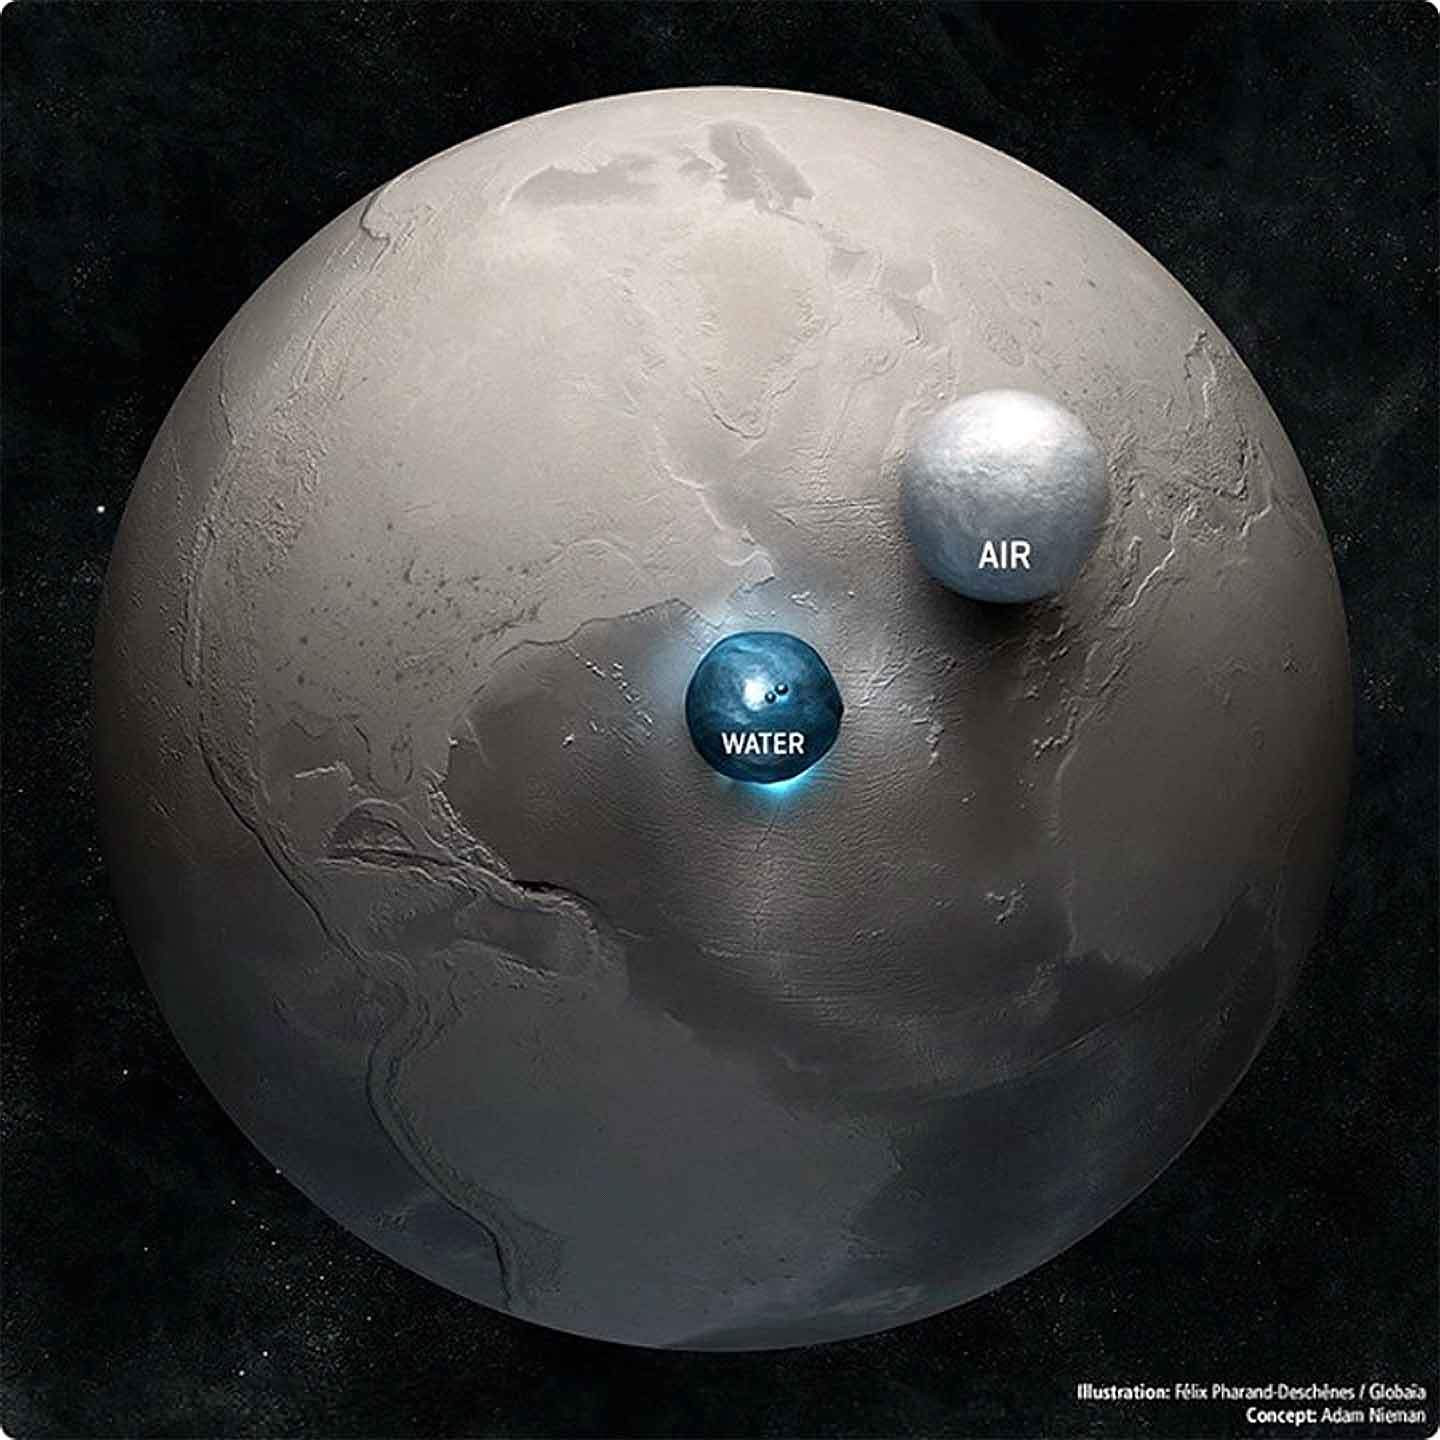 All the water and air of Earth